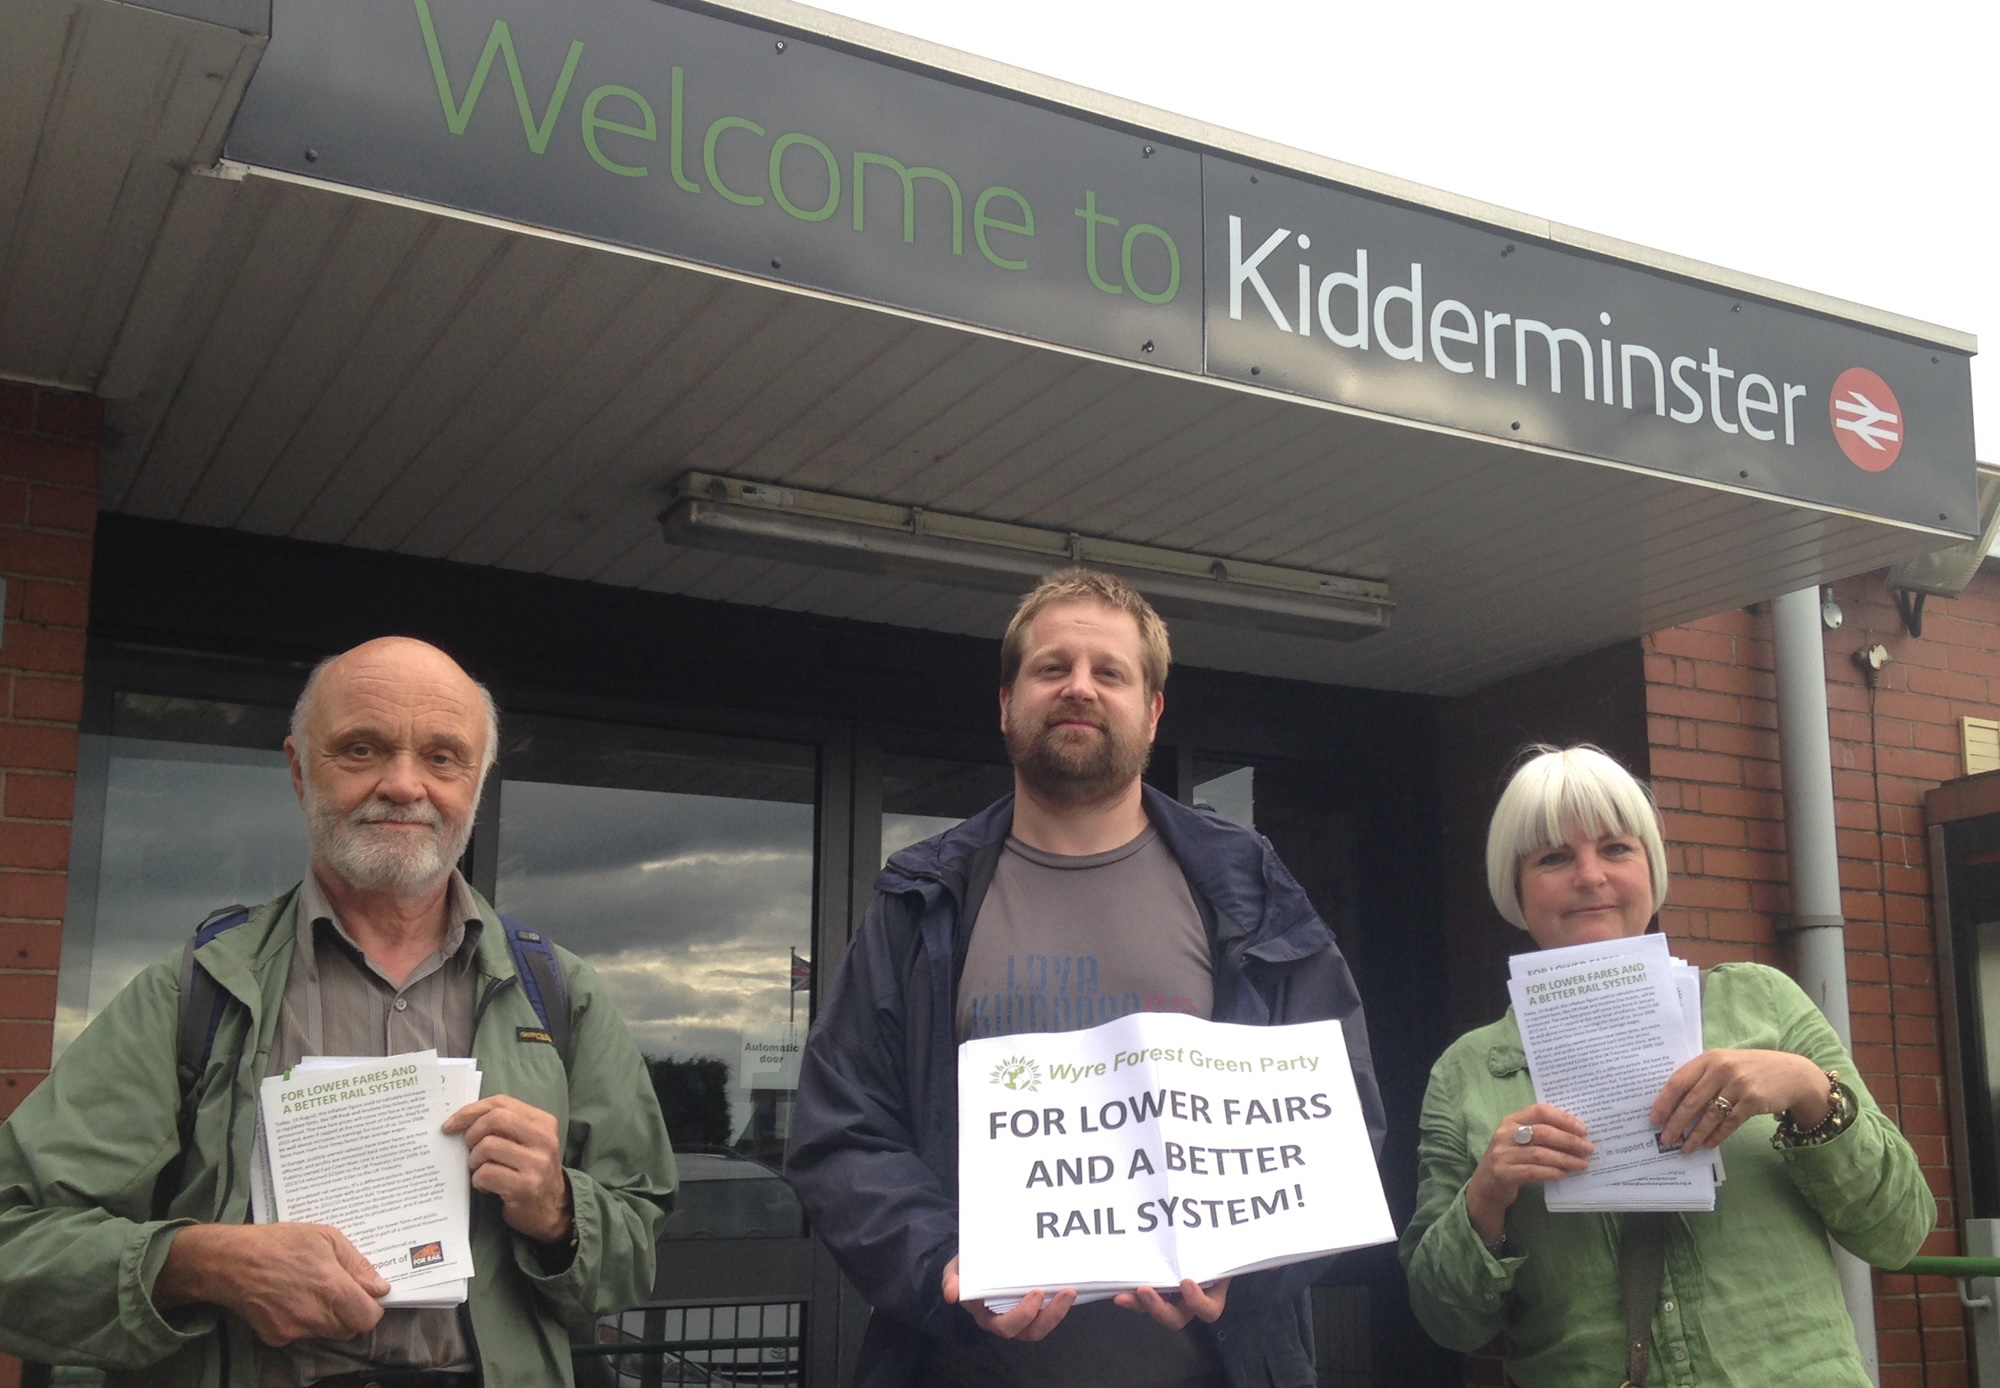 Wyre Forest Green Party members, Phil Oliver, Mart Layton and Natalie McVey call for fair rail fares and a return to the public ownership of our railways